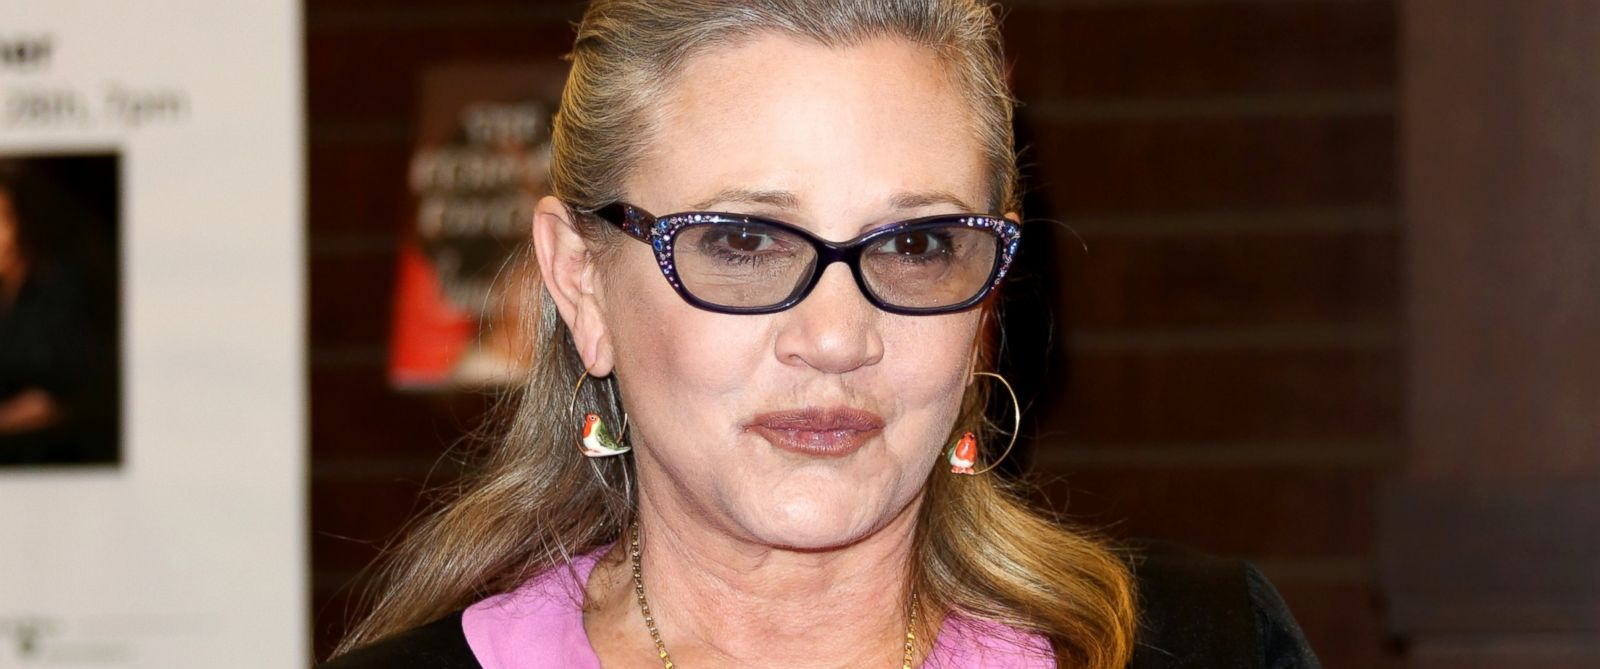 Murio carrie Fisher